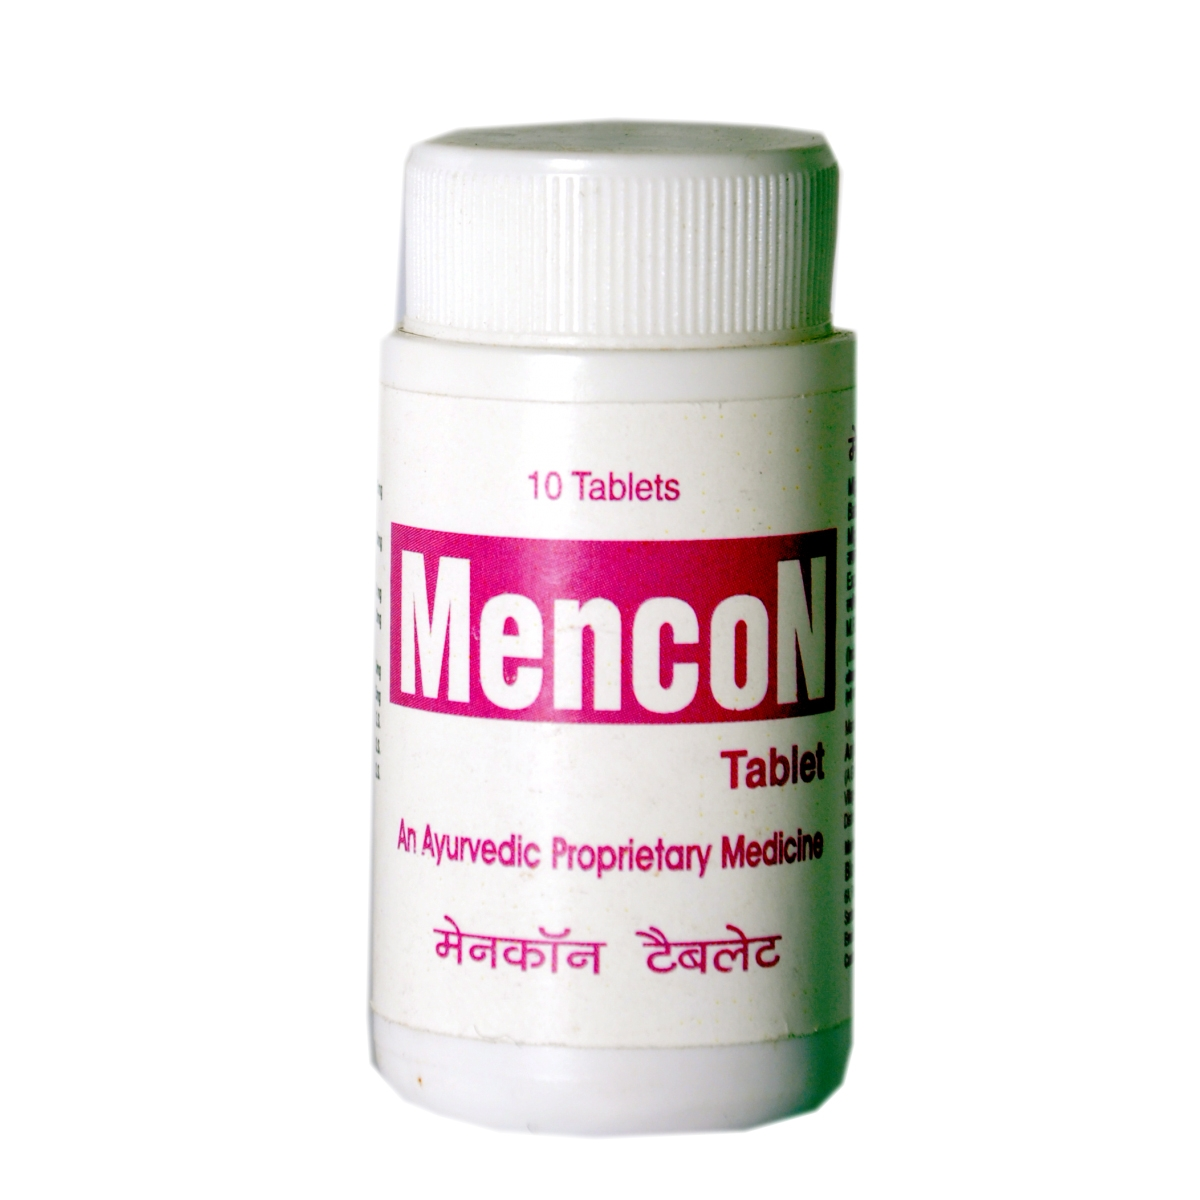 Mencon Tablet In Murshidabad